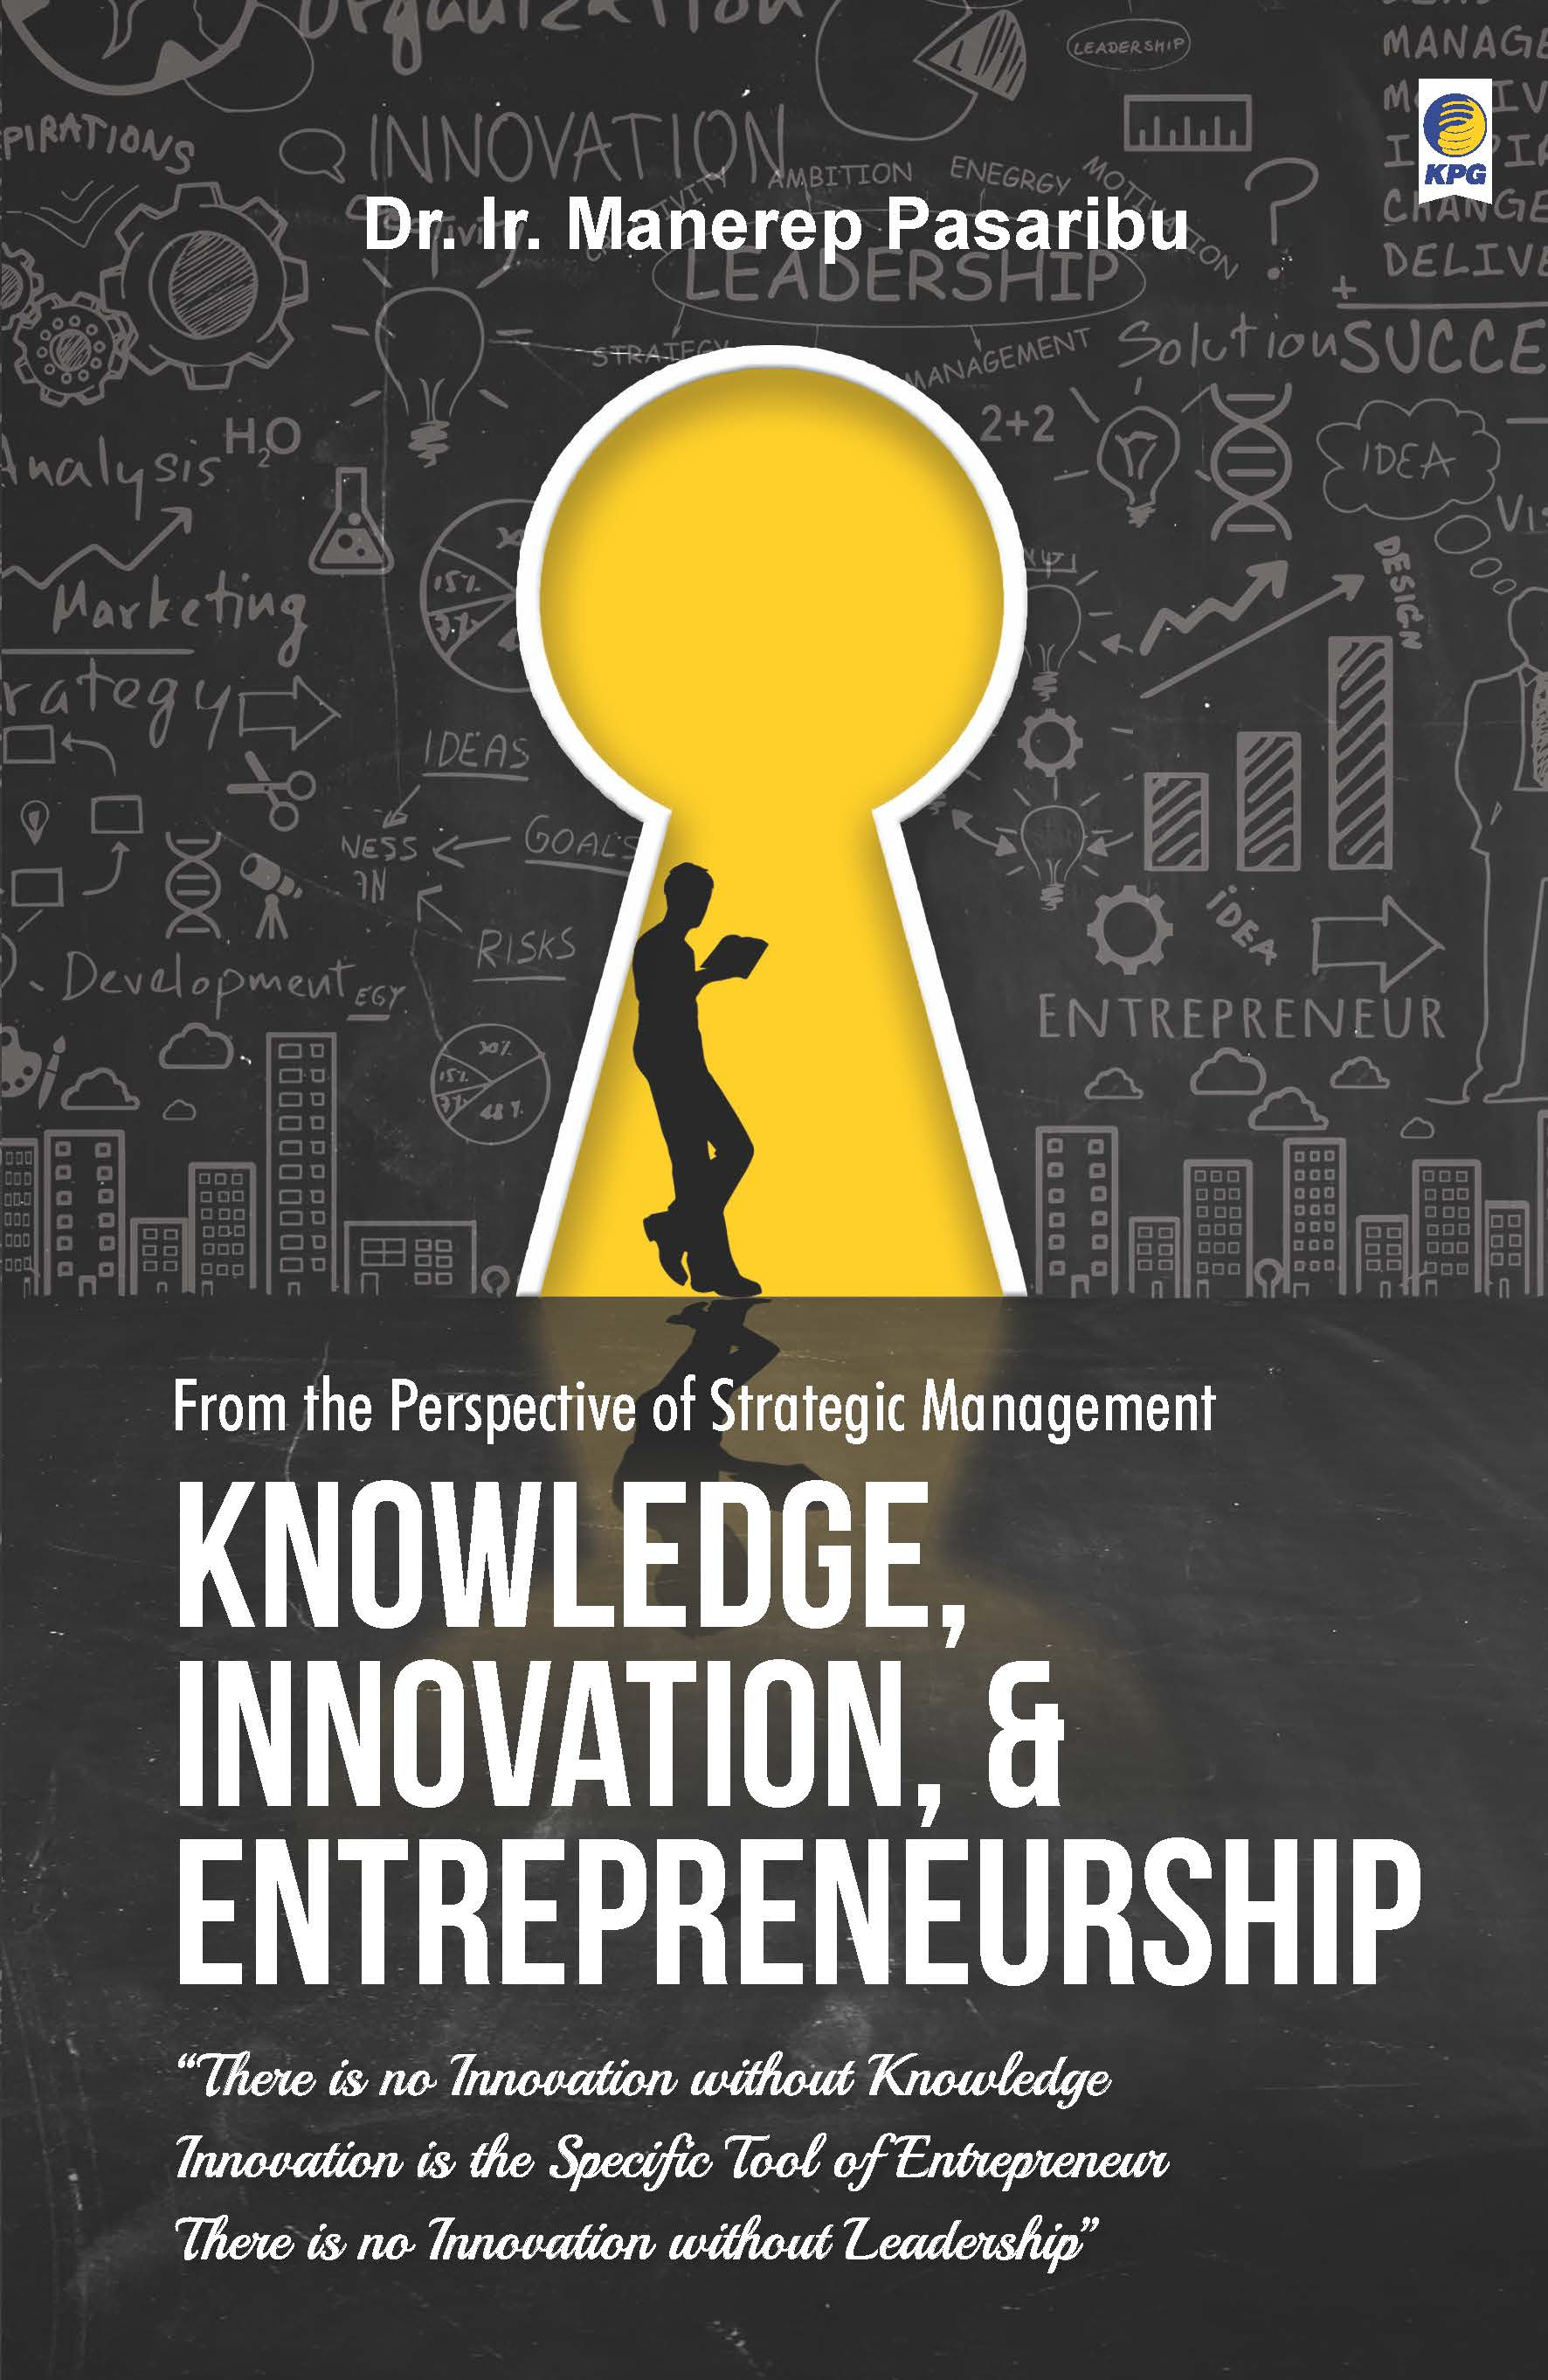 From the perspective of strategic management knowledge, innovation, & entrepreneurship